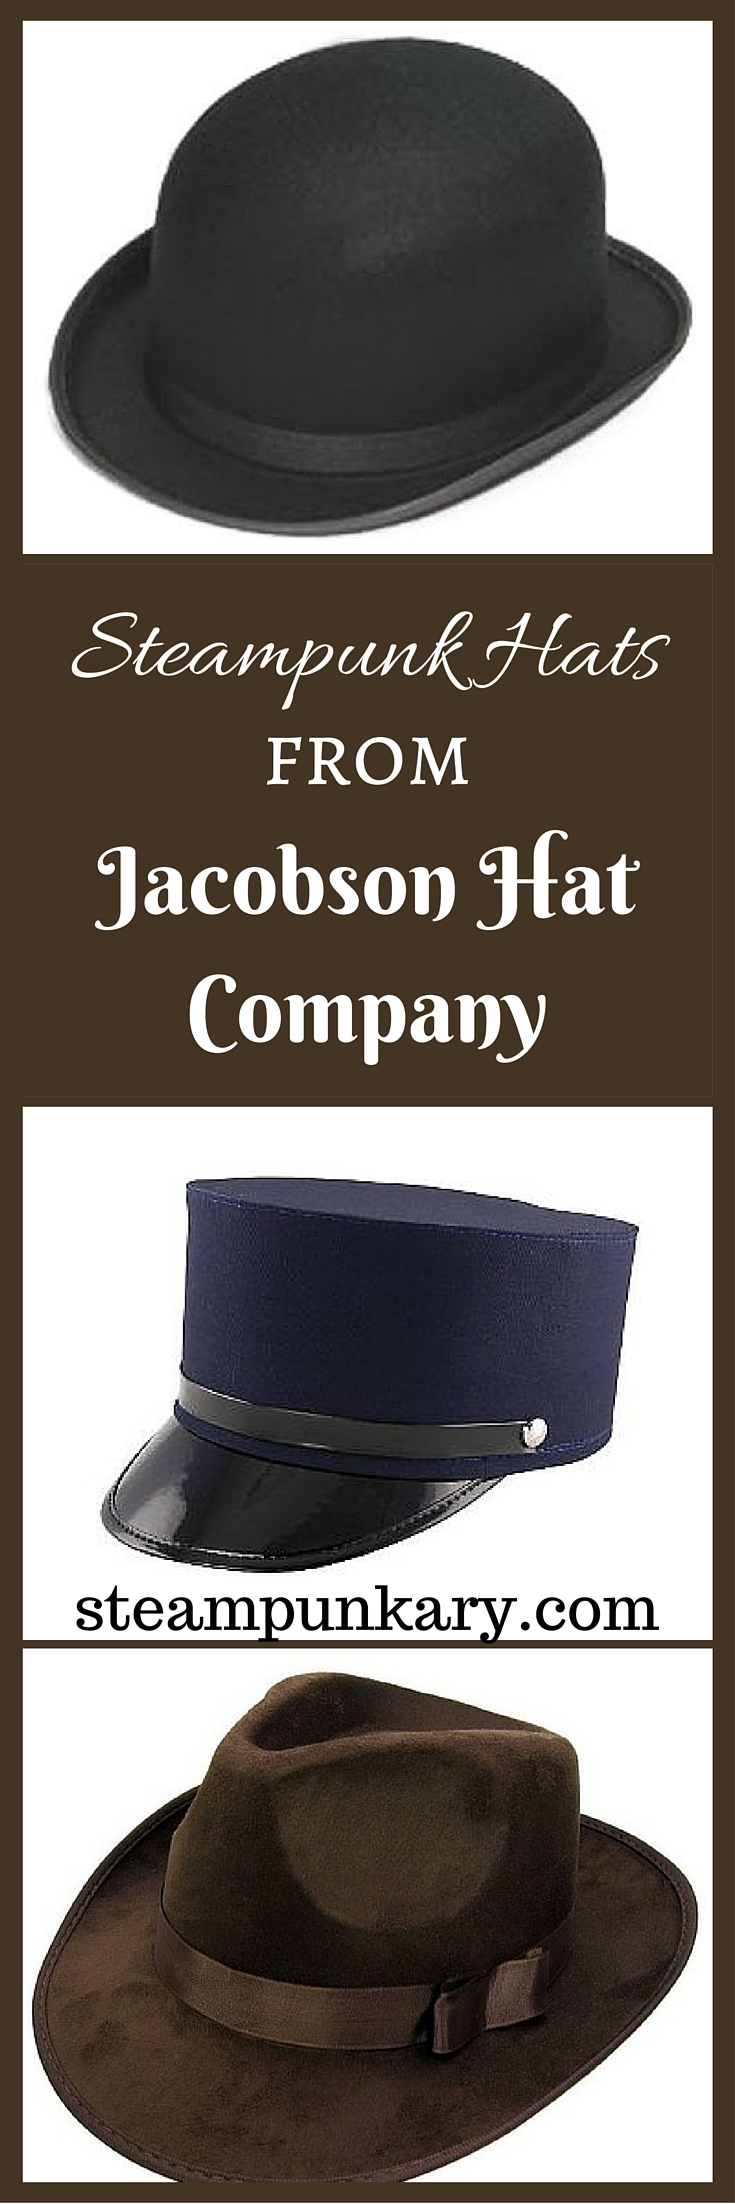 Steampunk Hats from Jacobson Hat Company